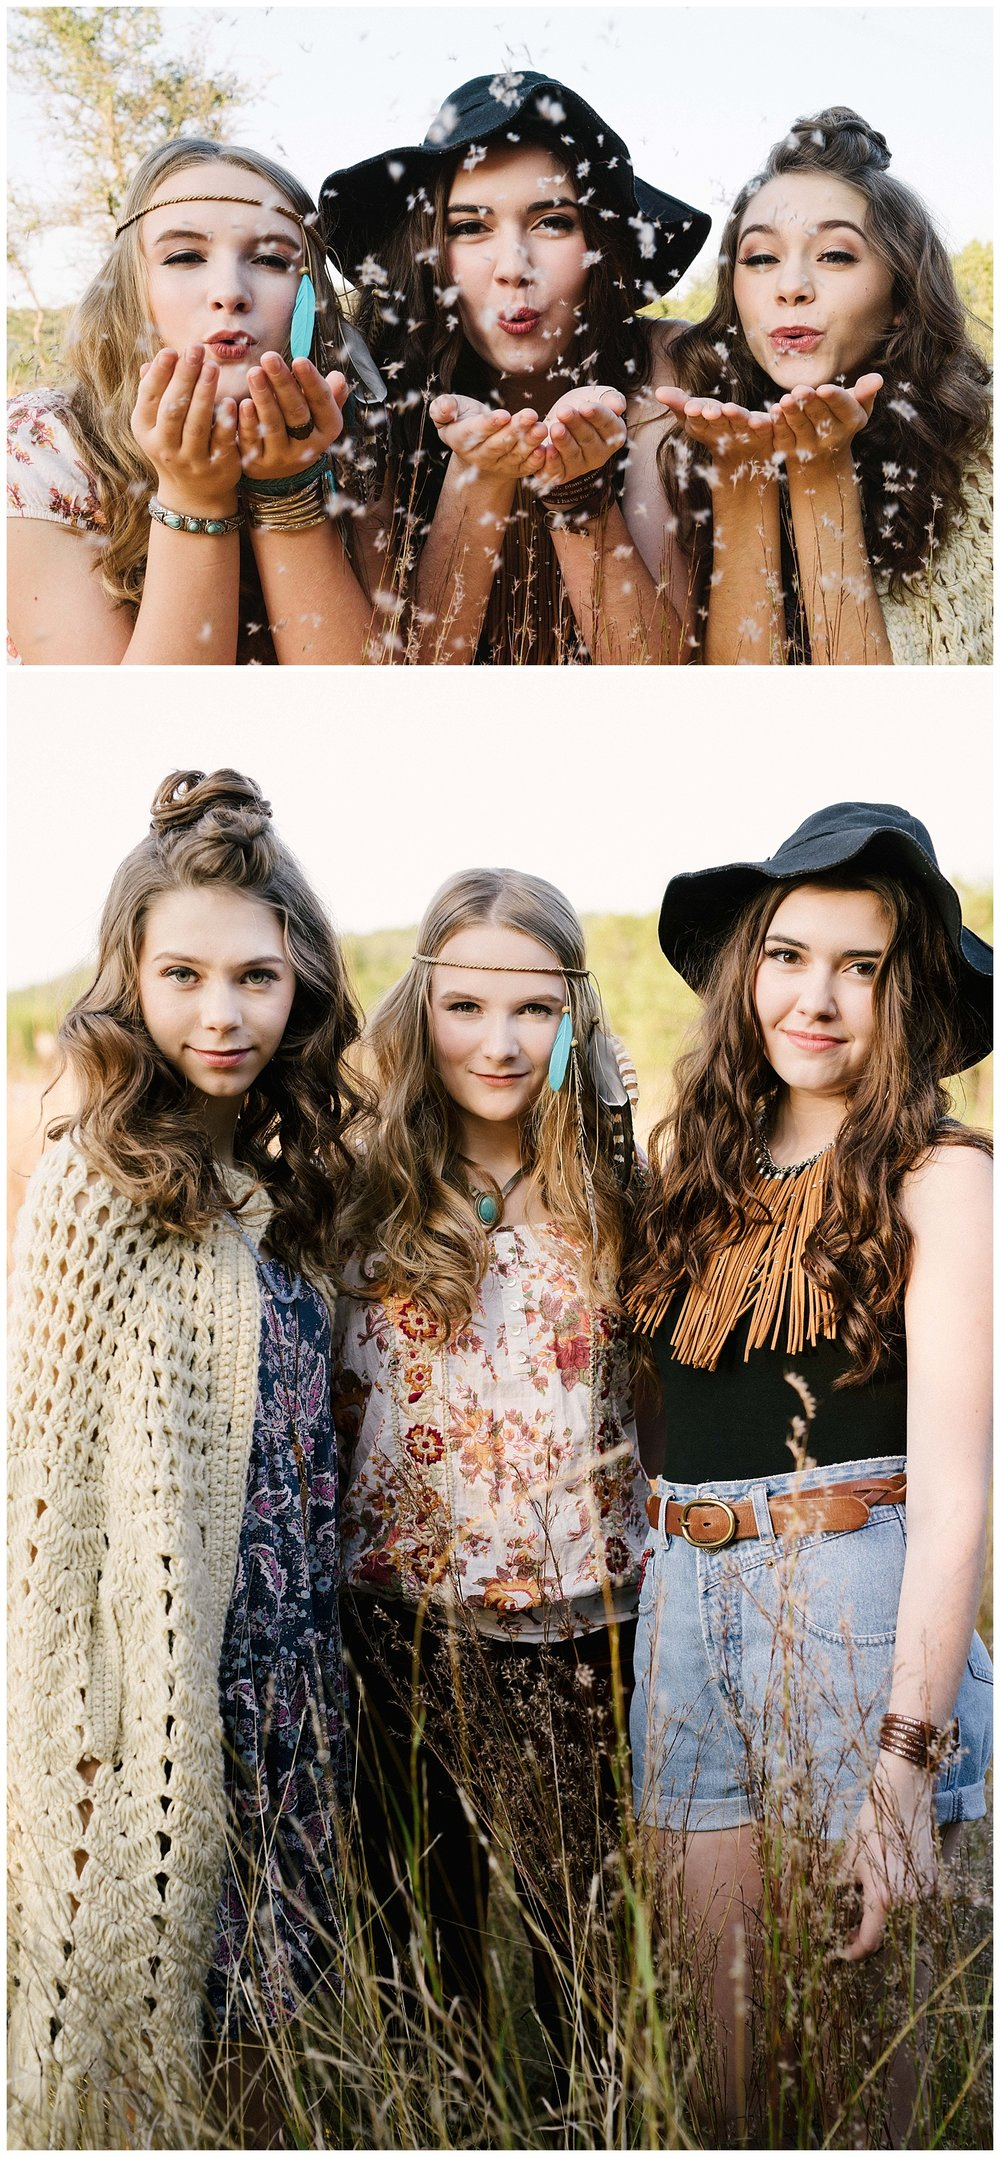 boho-style-senior-pictures-high-school-grad-ideas.jpg